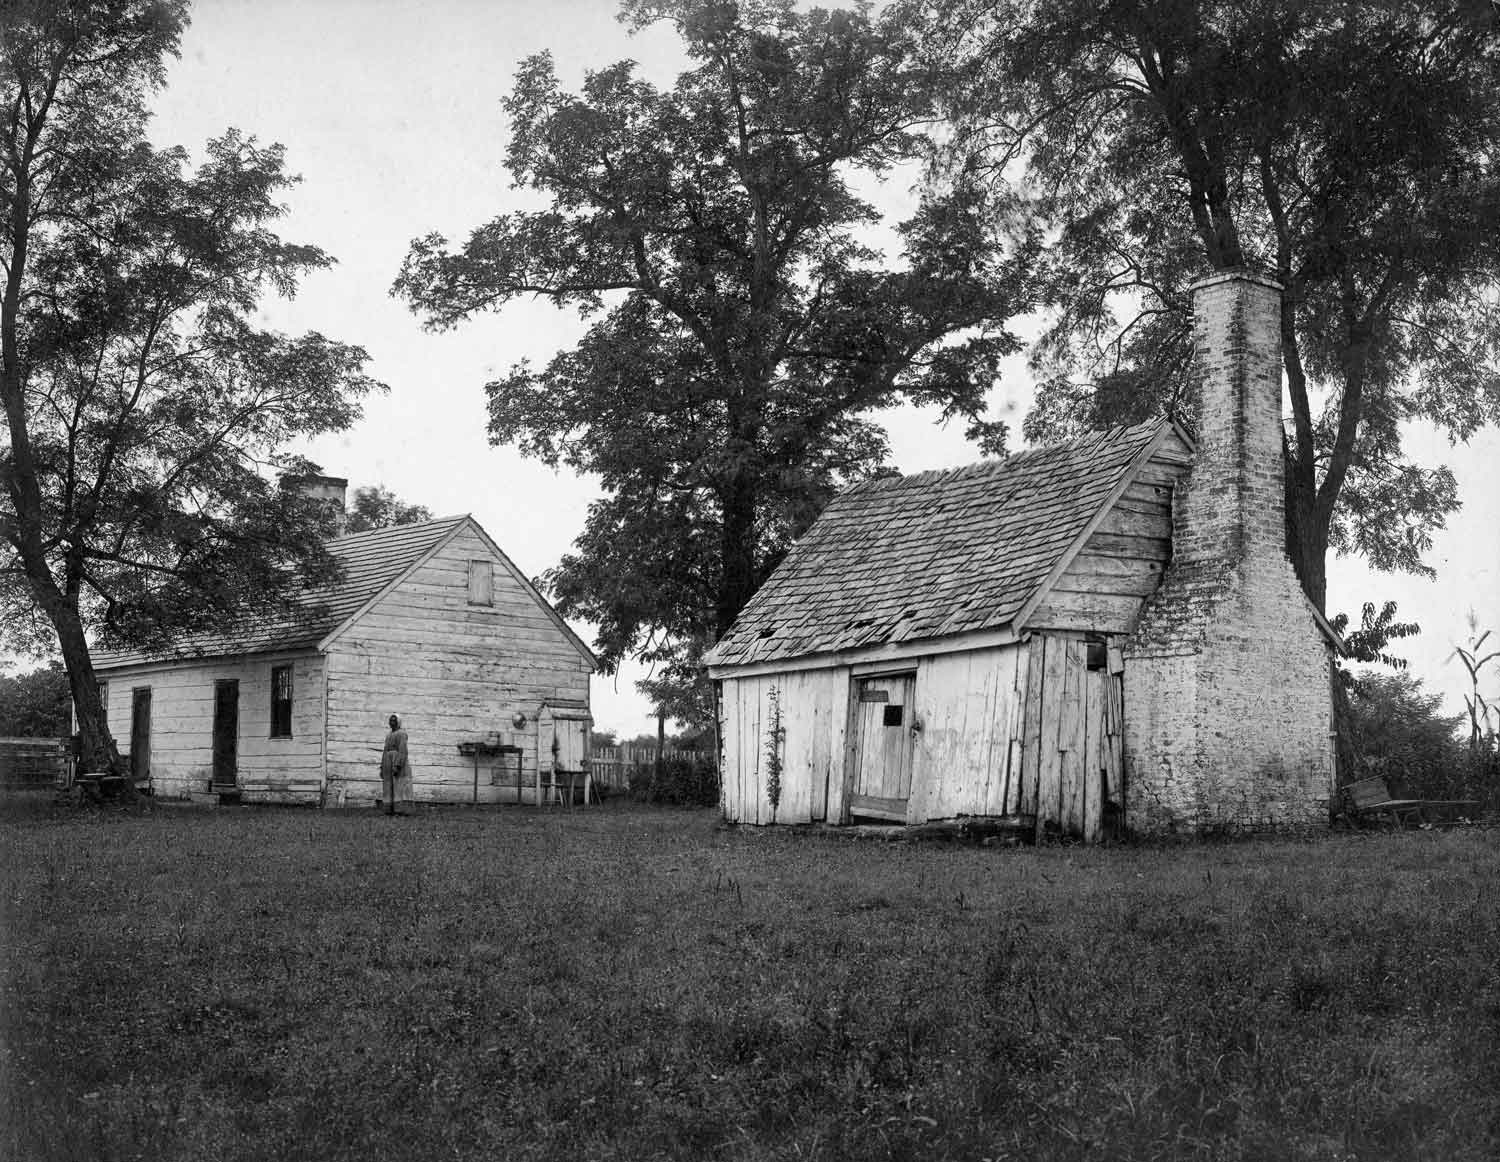 Ca. 1890s photograph of the single quarter and duplex quarter